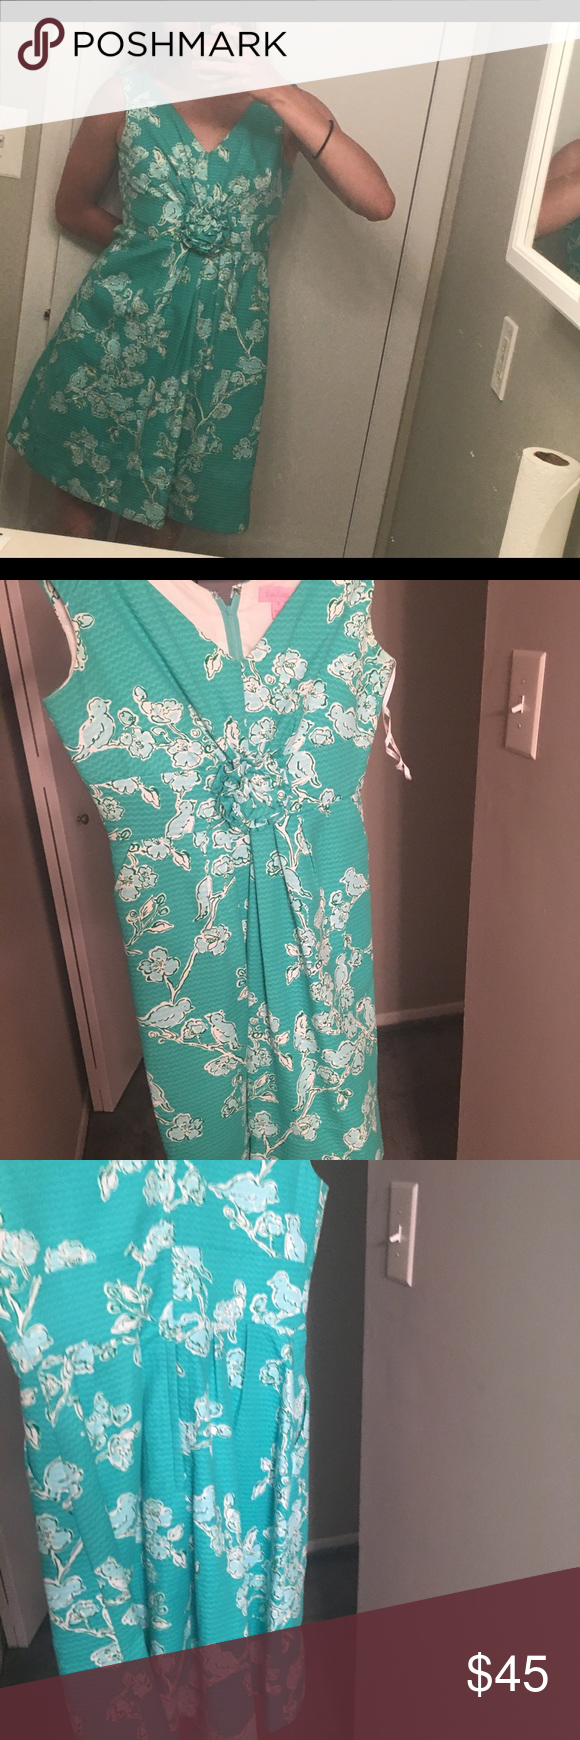 Lilly Pulitzer Garden Party Dress | Blue green, Customer support and ...